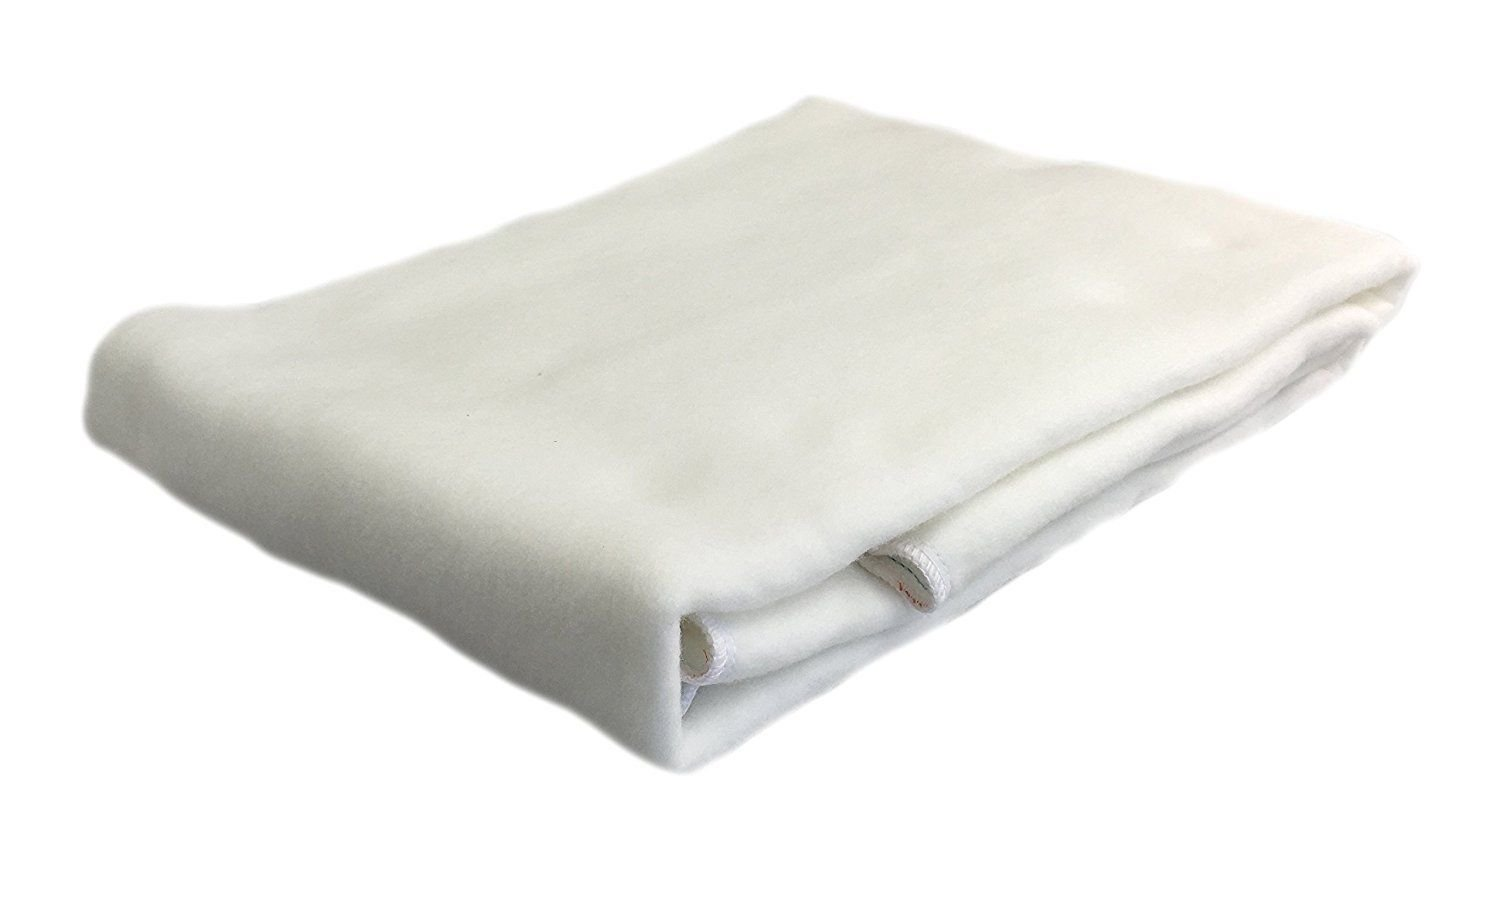 Koni Marriott Mattress Pad/Protector, Non-Quilted w/Anchor Bands, White, Polyester, Queen (63''x79'')